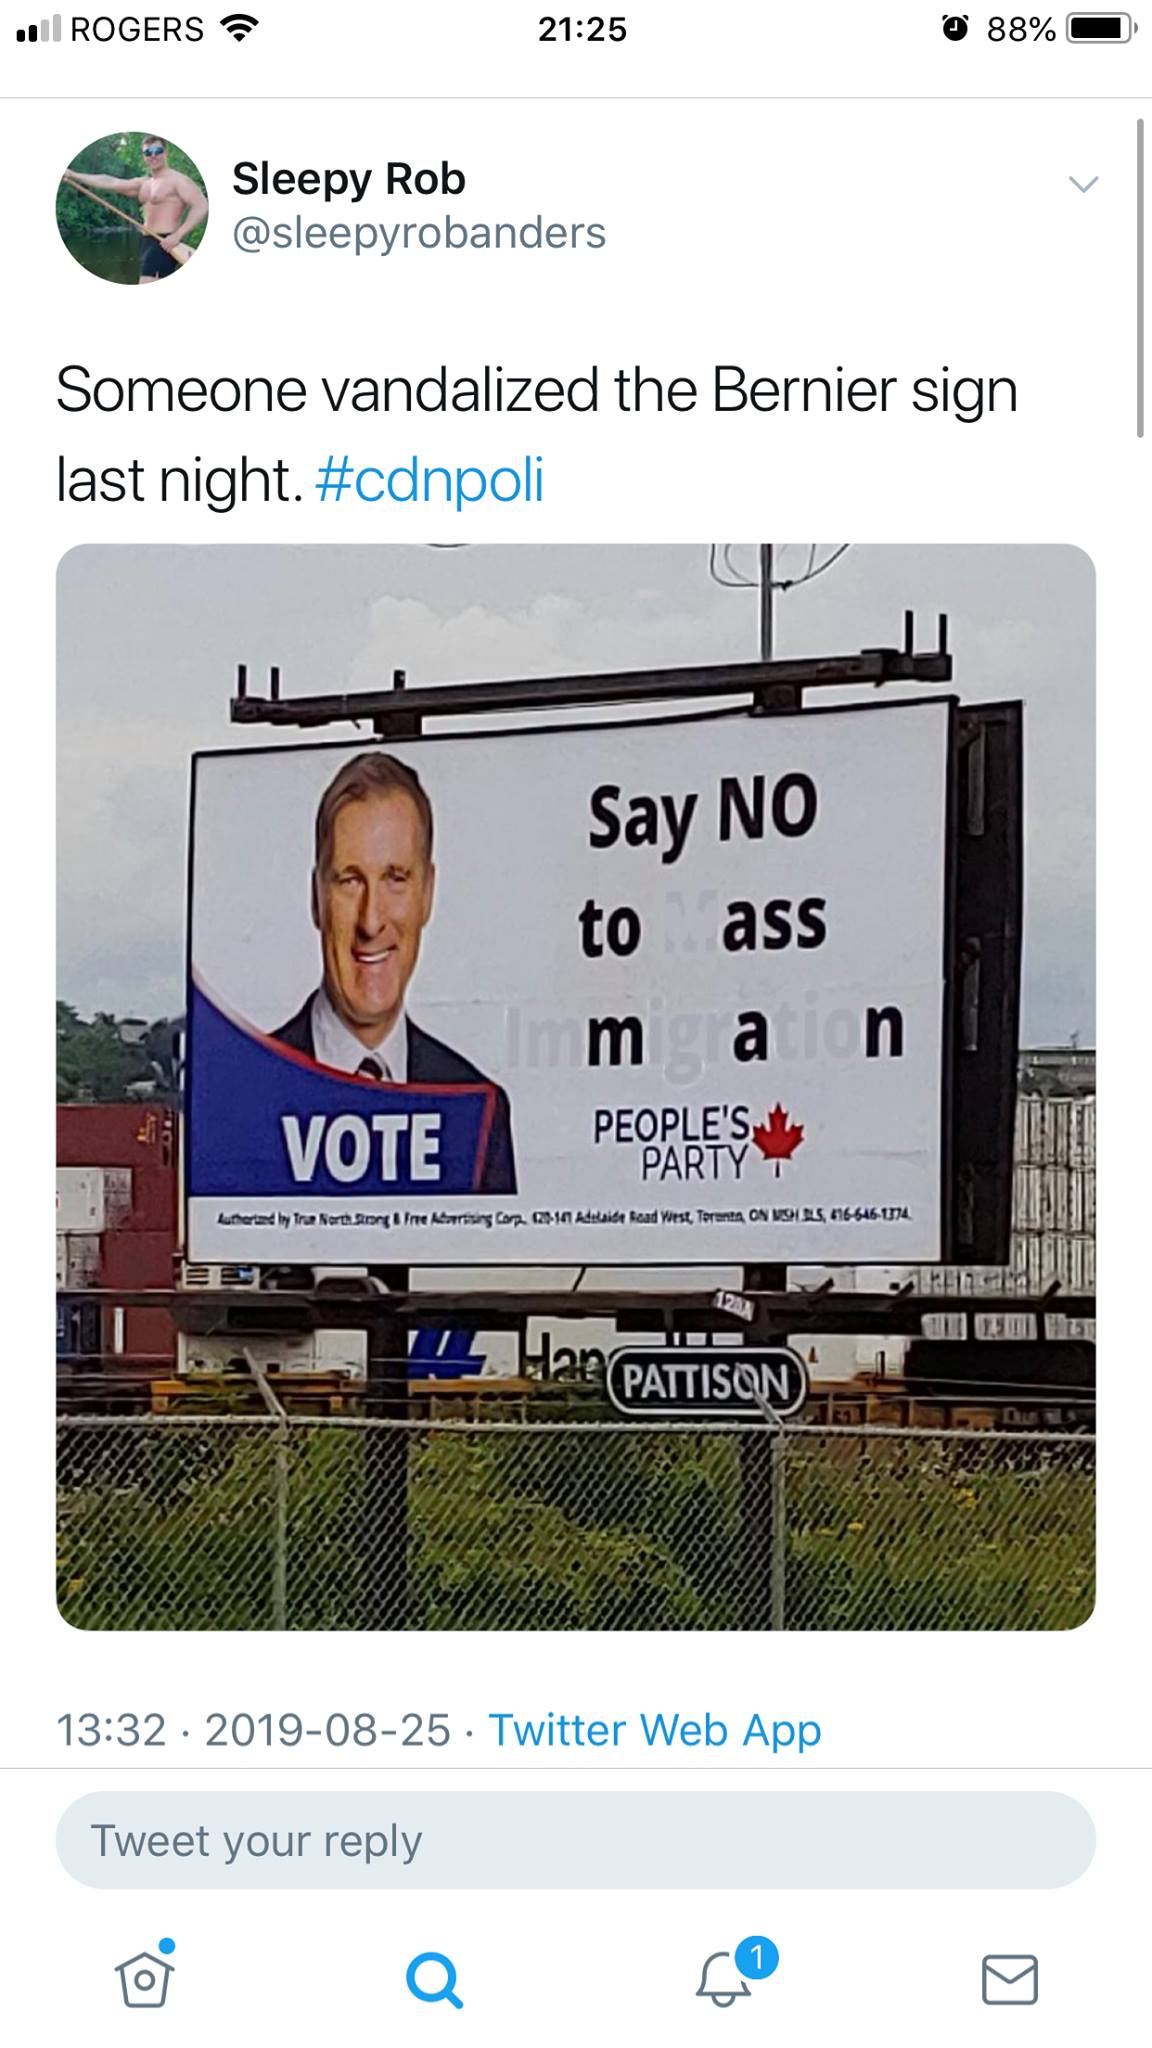 say no to ass man, someone vandalized the bernier sign last night